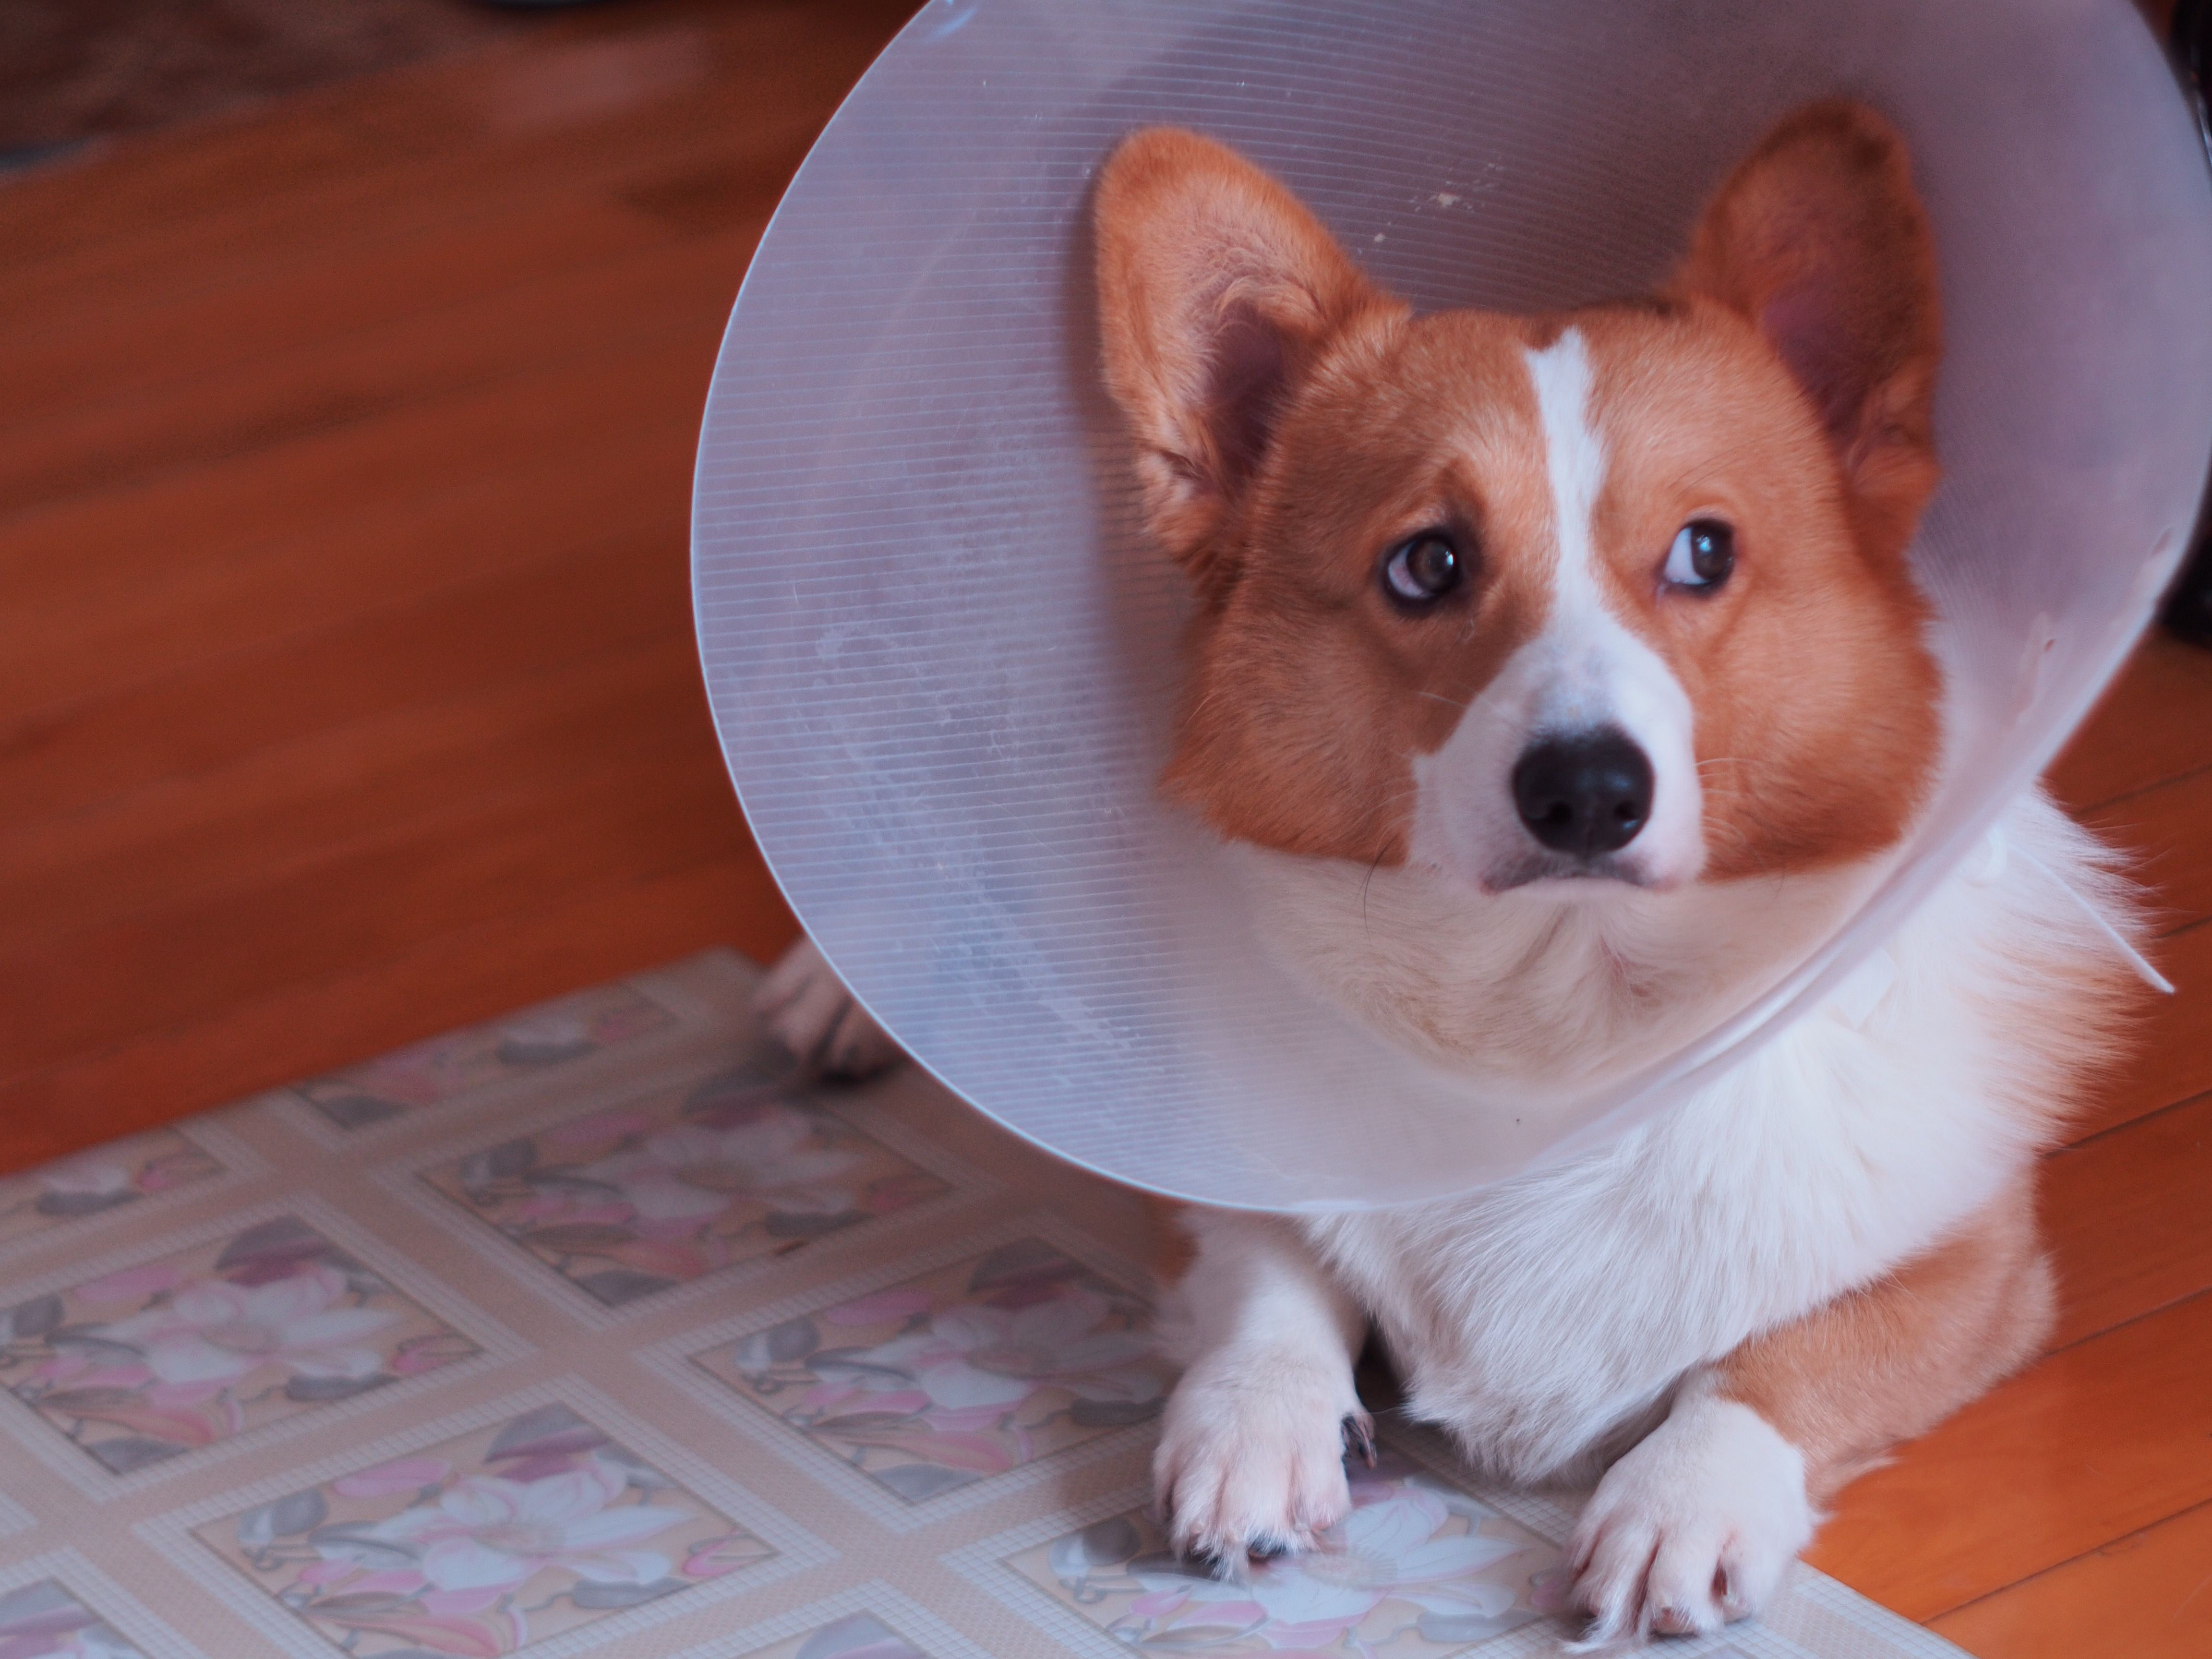 Not too sure about the cone (Xpost from /r/ConeOfShame